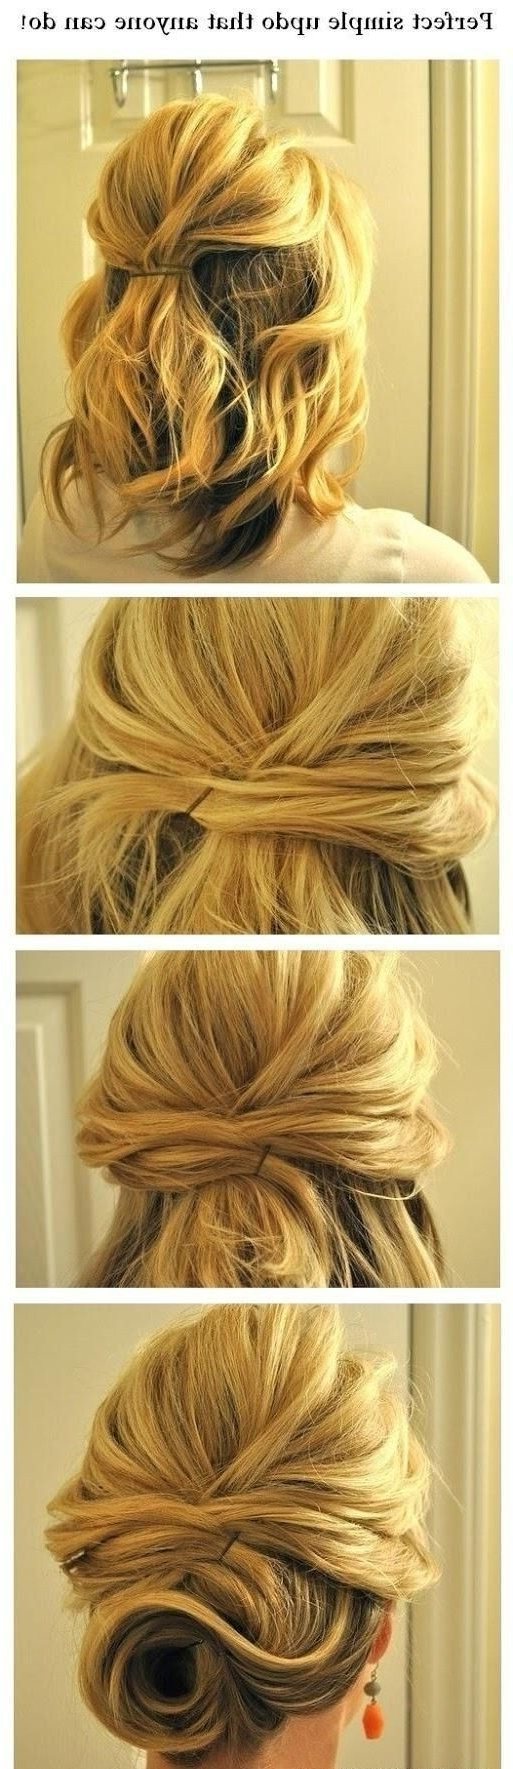 12 Trendy Low Bun Updo Hairstyles Tutorials: Easy Cute – Popular Throughout Easy Low Bun Updo Hairstyles (View 3 of 15)